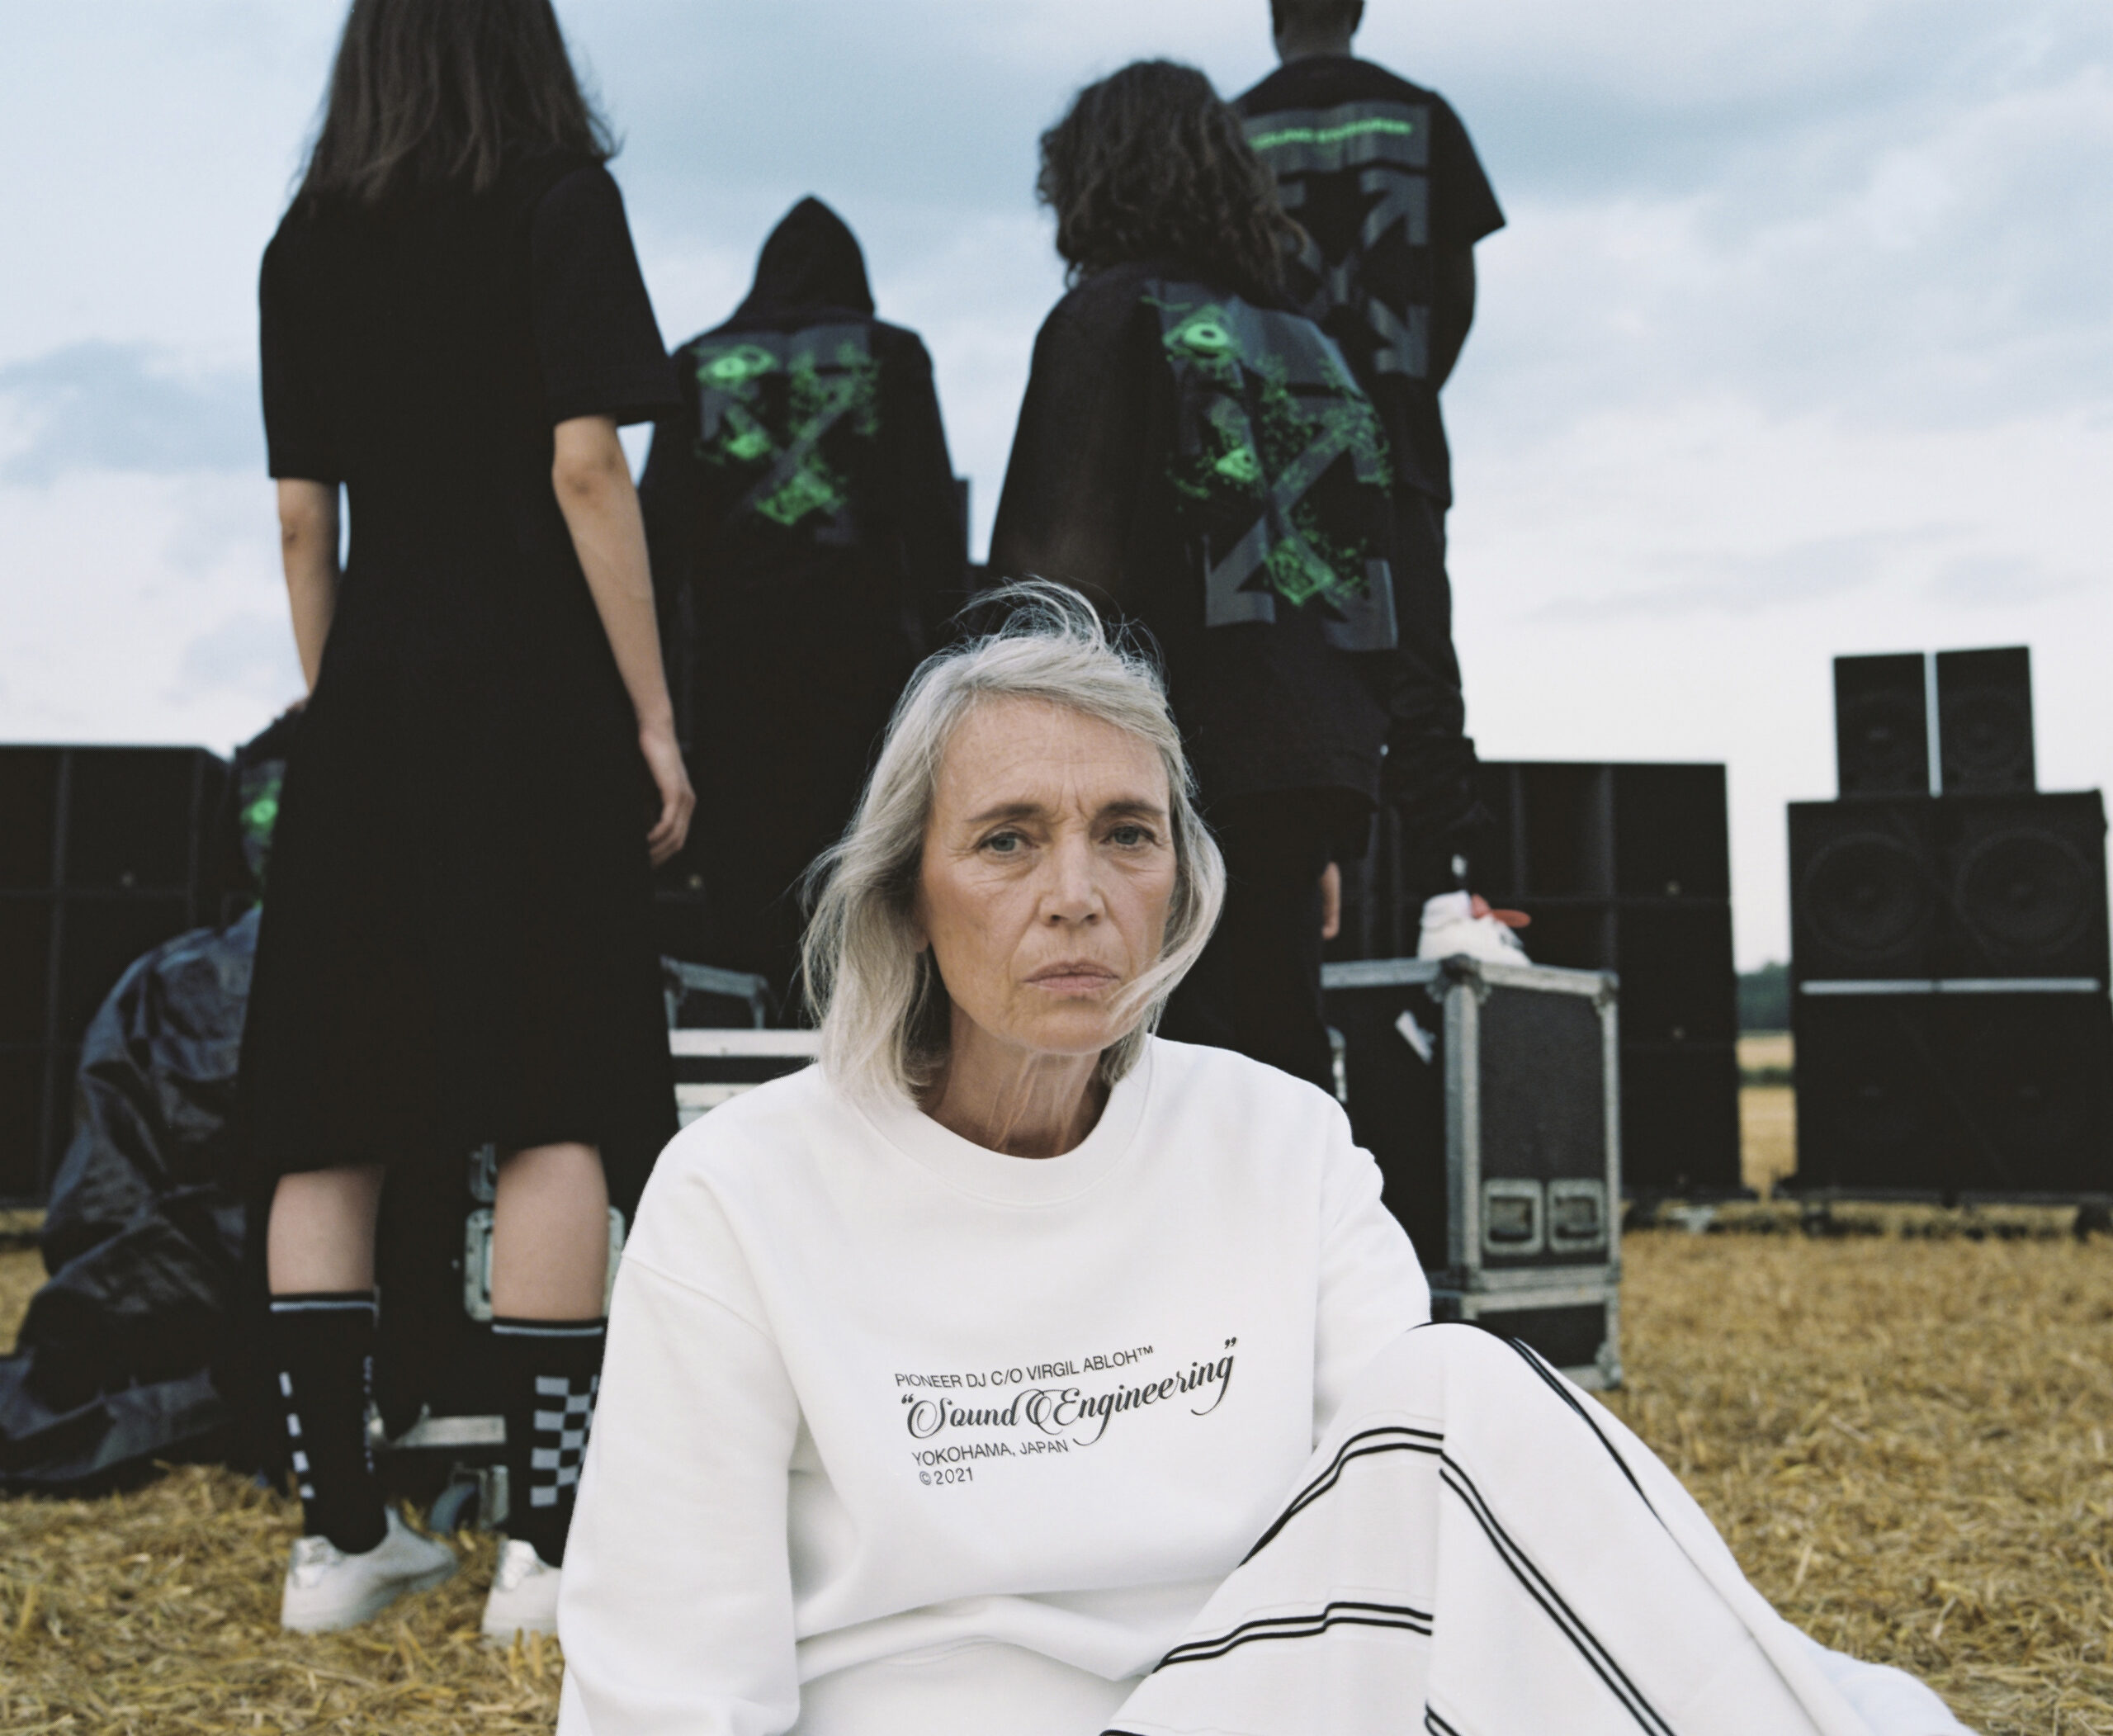 Pioneer DJ unveils collaboration with Off-White ™: 'SOUND ENGINEERING'